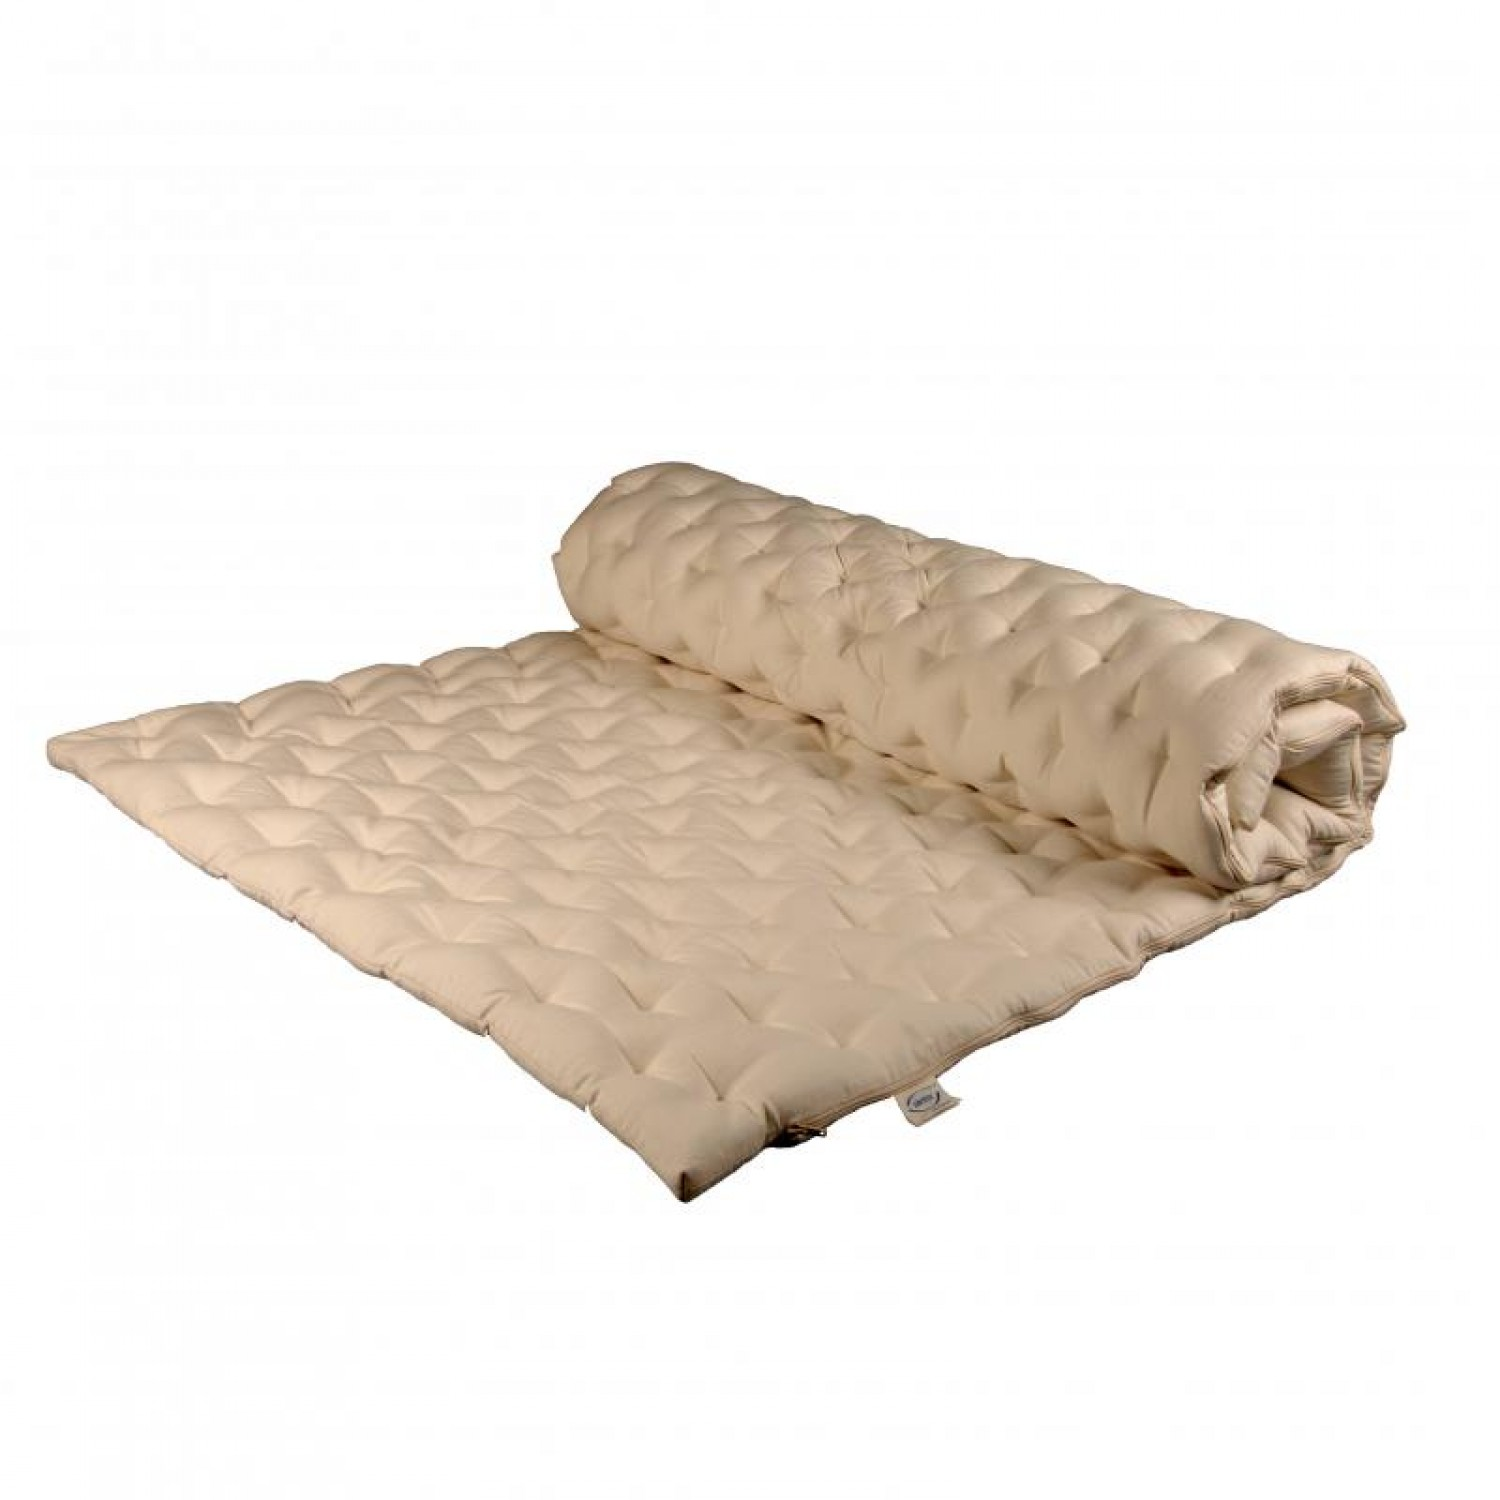 Mattress Topper Organic Millet Shells